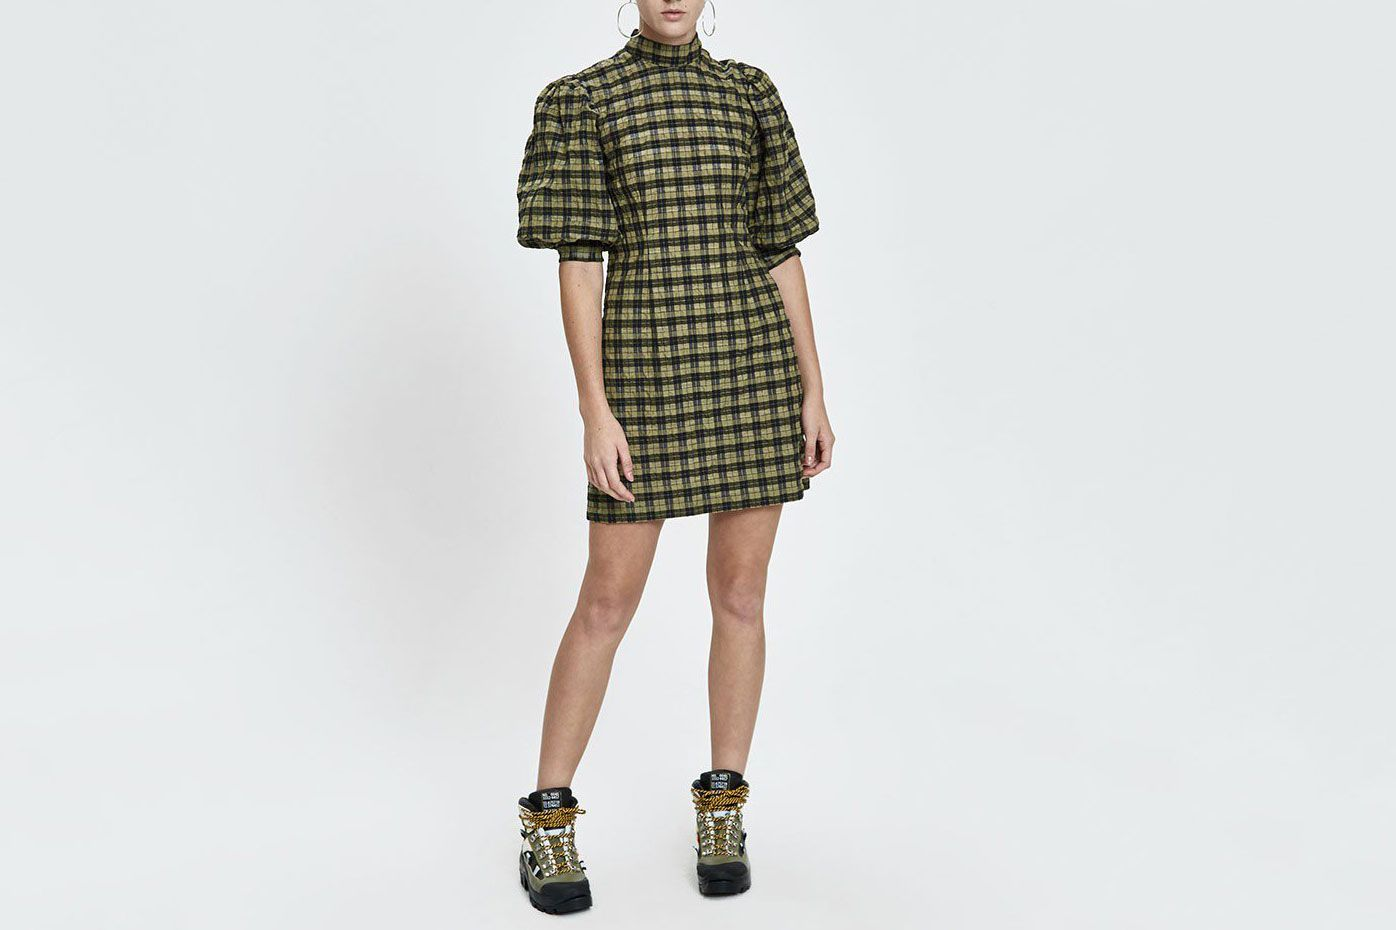 Ganni Seersucker Check Puff Sleeve Dress